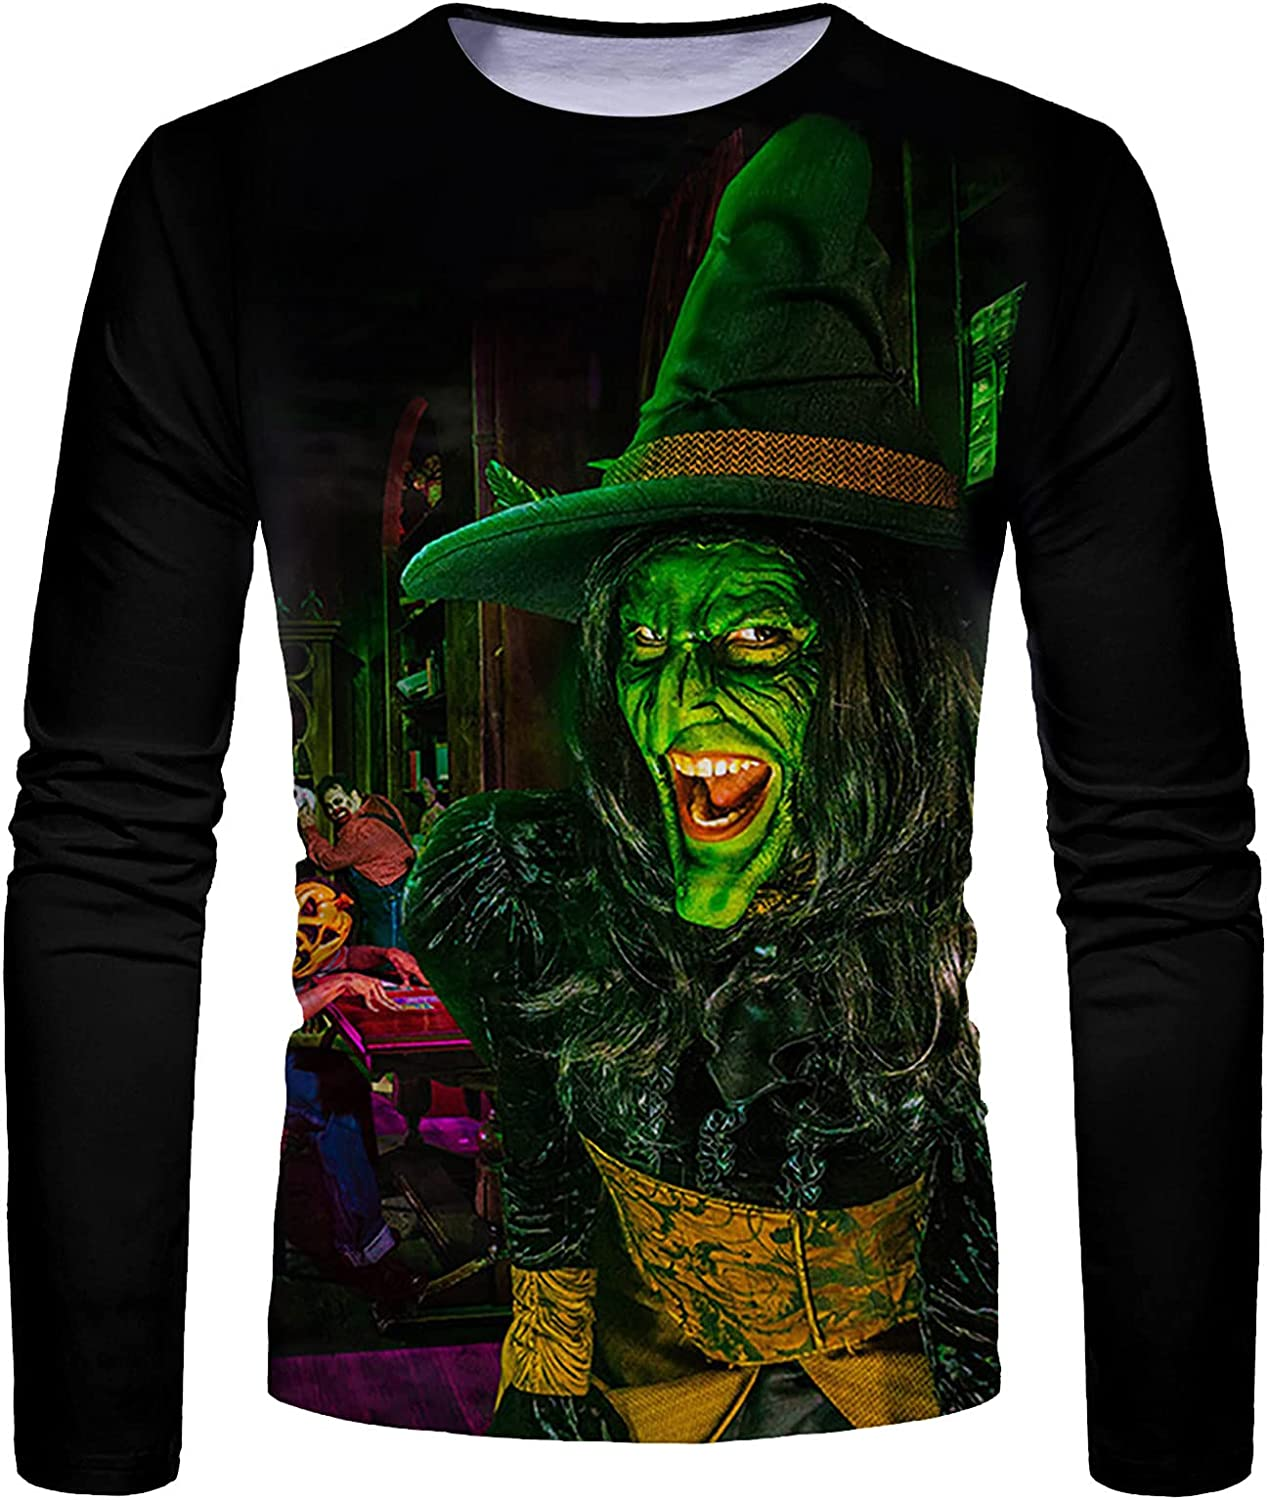 XXBR Halloween Soldier Long Sleeve T-shirts for Mens, Fall Funny Pumpkin Black Cat Bat Print Casual Athletic Tee Tops